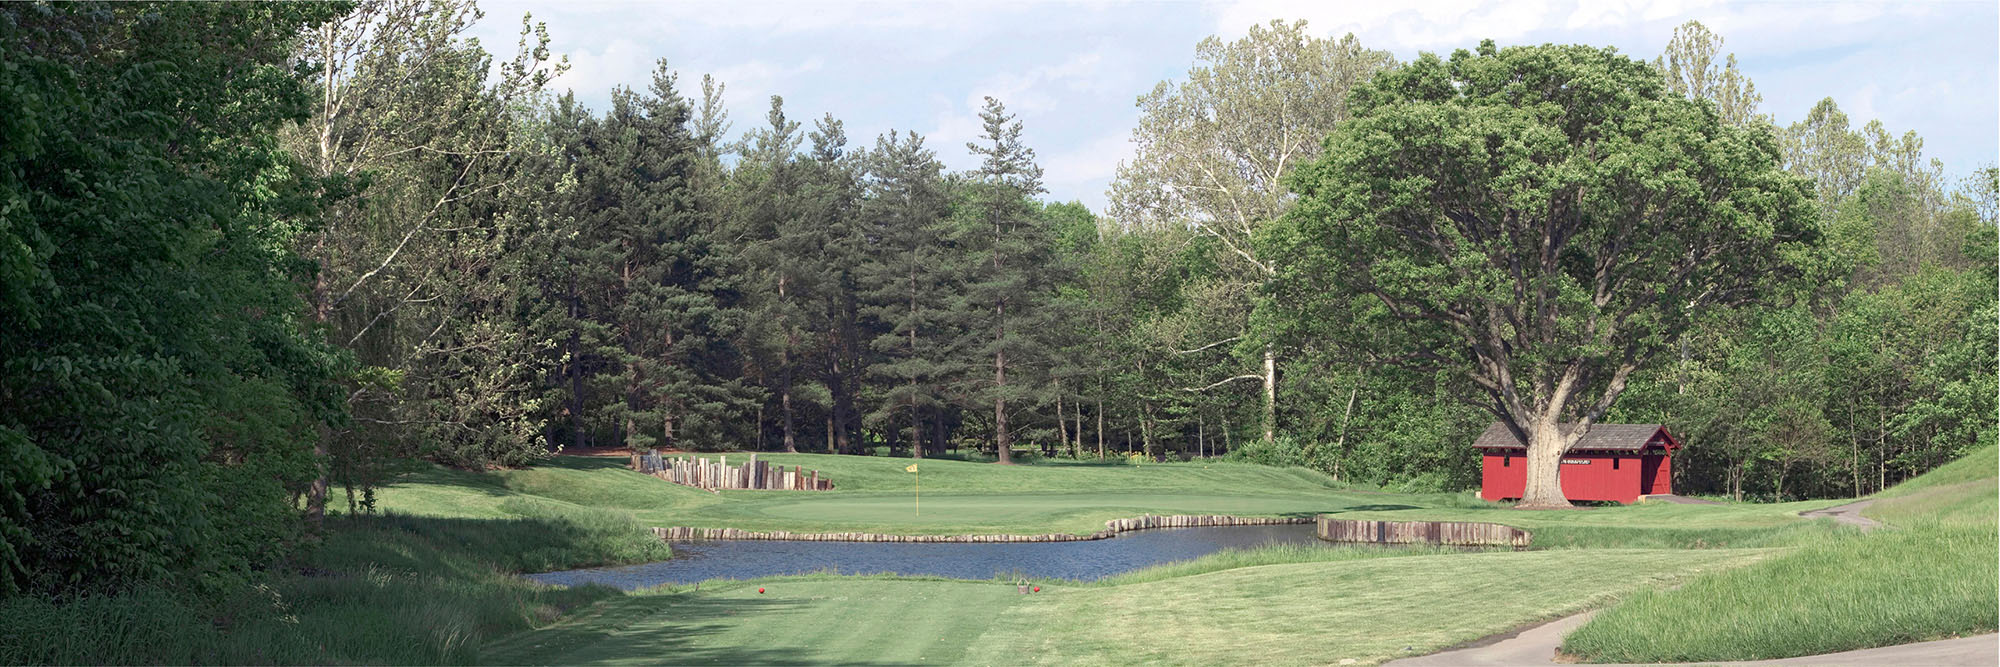 Golf Course Image - Crooked Stick No. 6